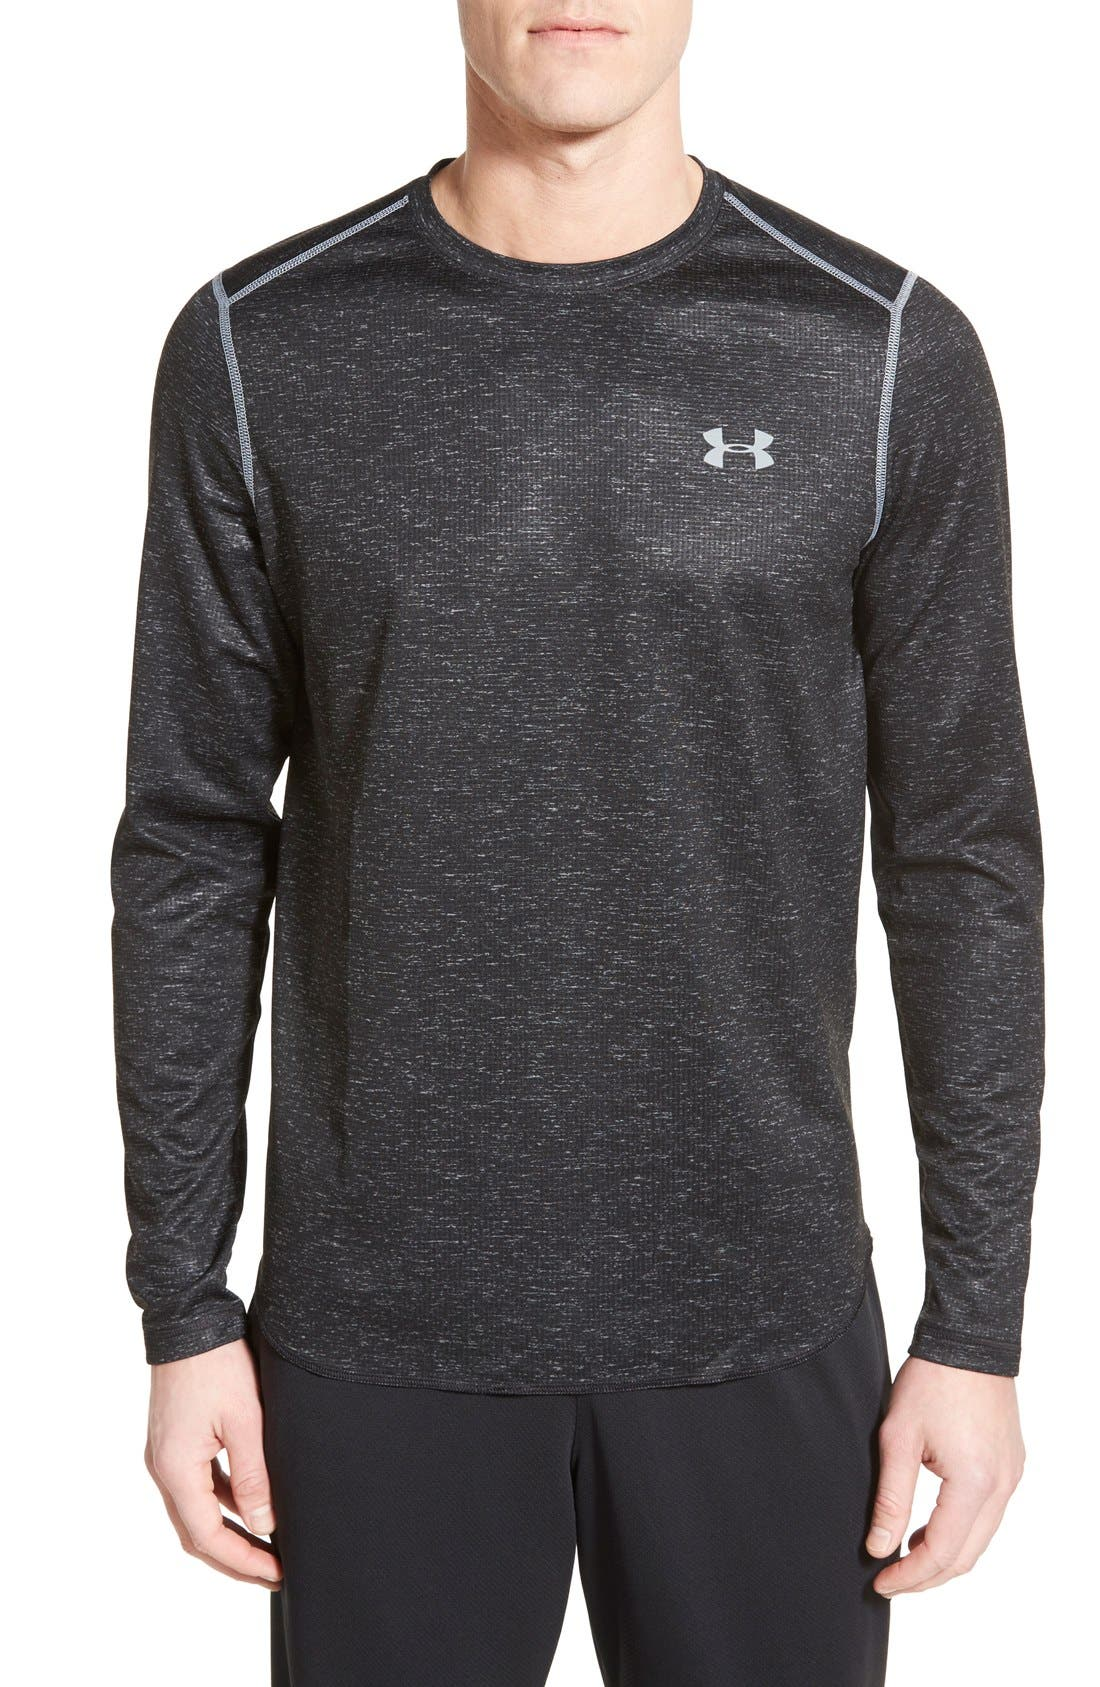 Tech<sup>™</sup> Long Sleeve Waffle Knit T-Shirt,                         Main,                         color, Black/ Black/ Steel